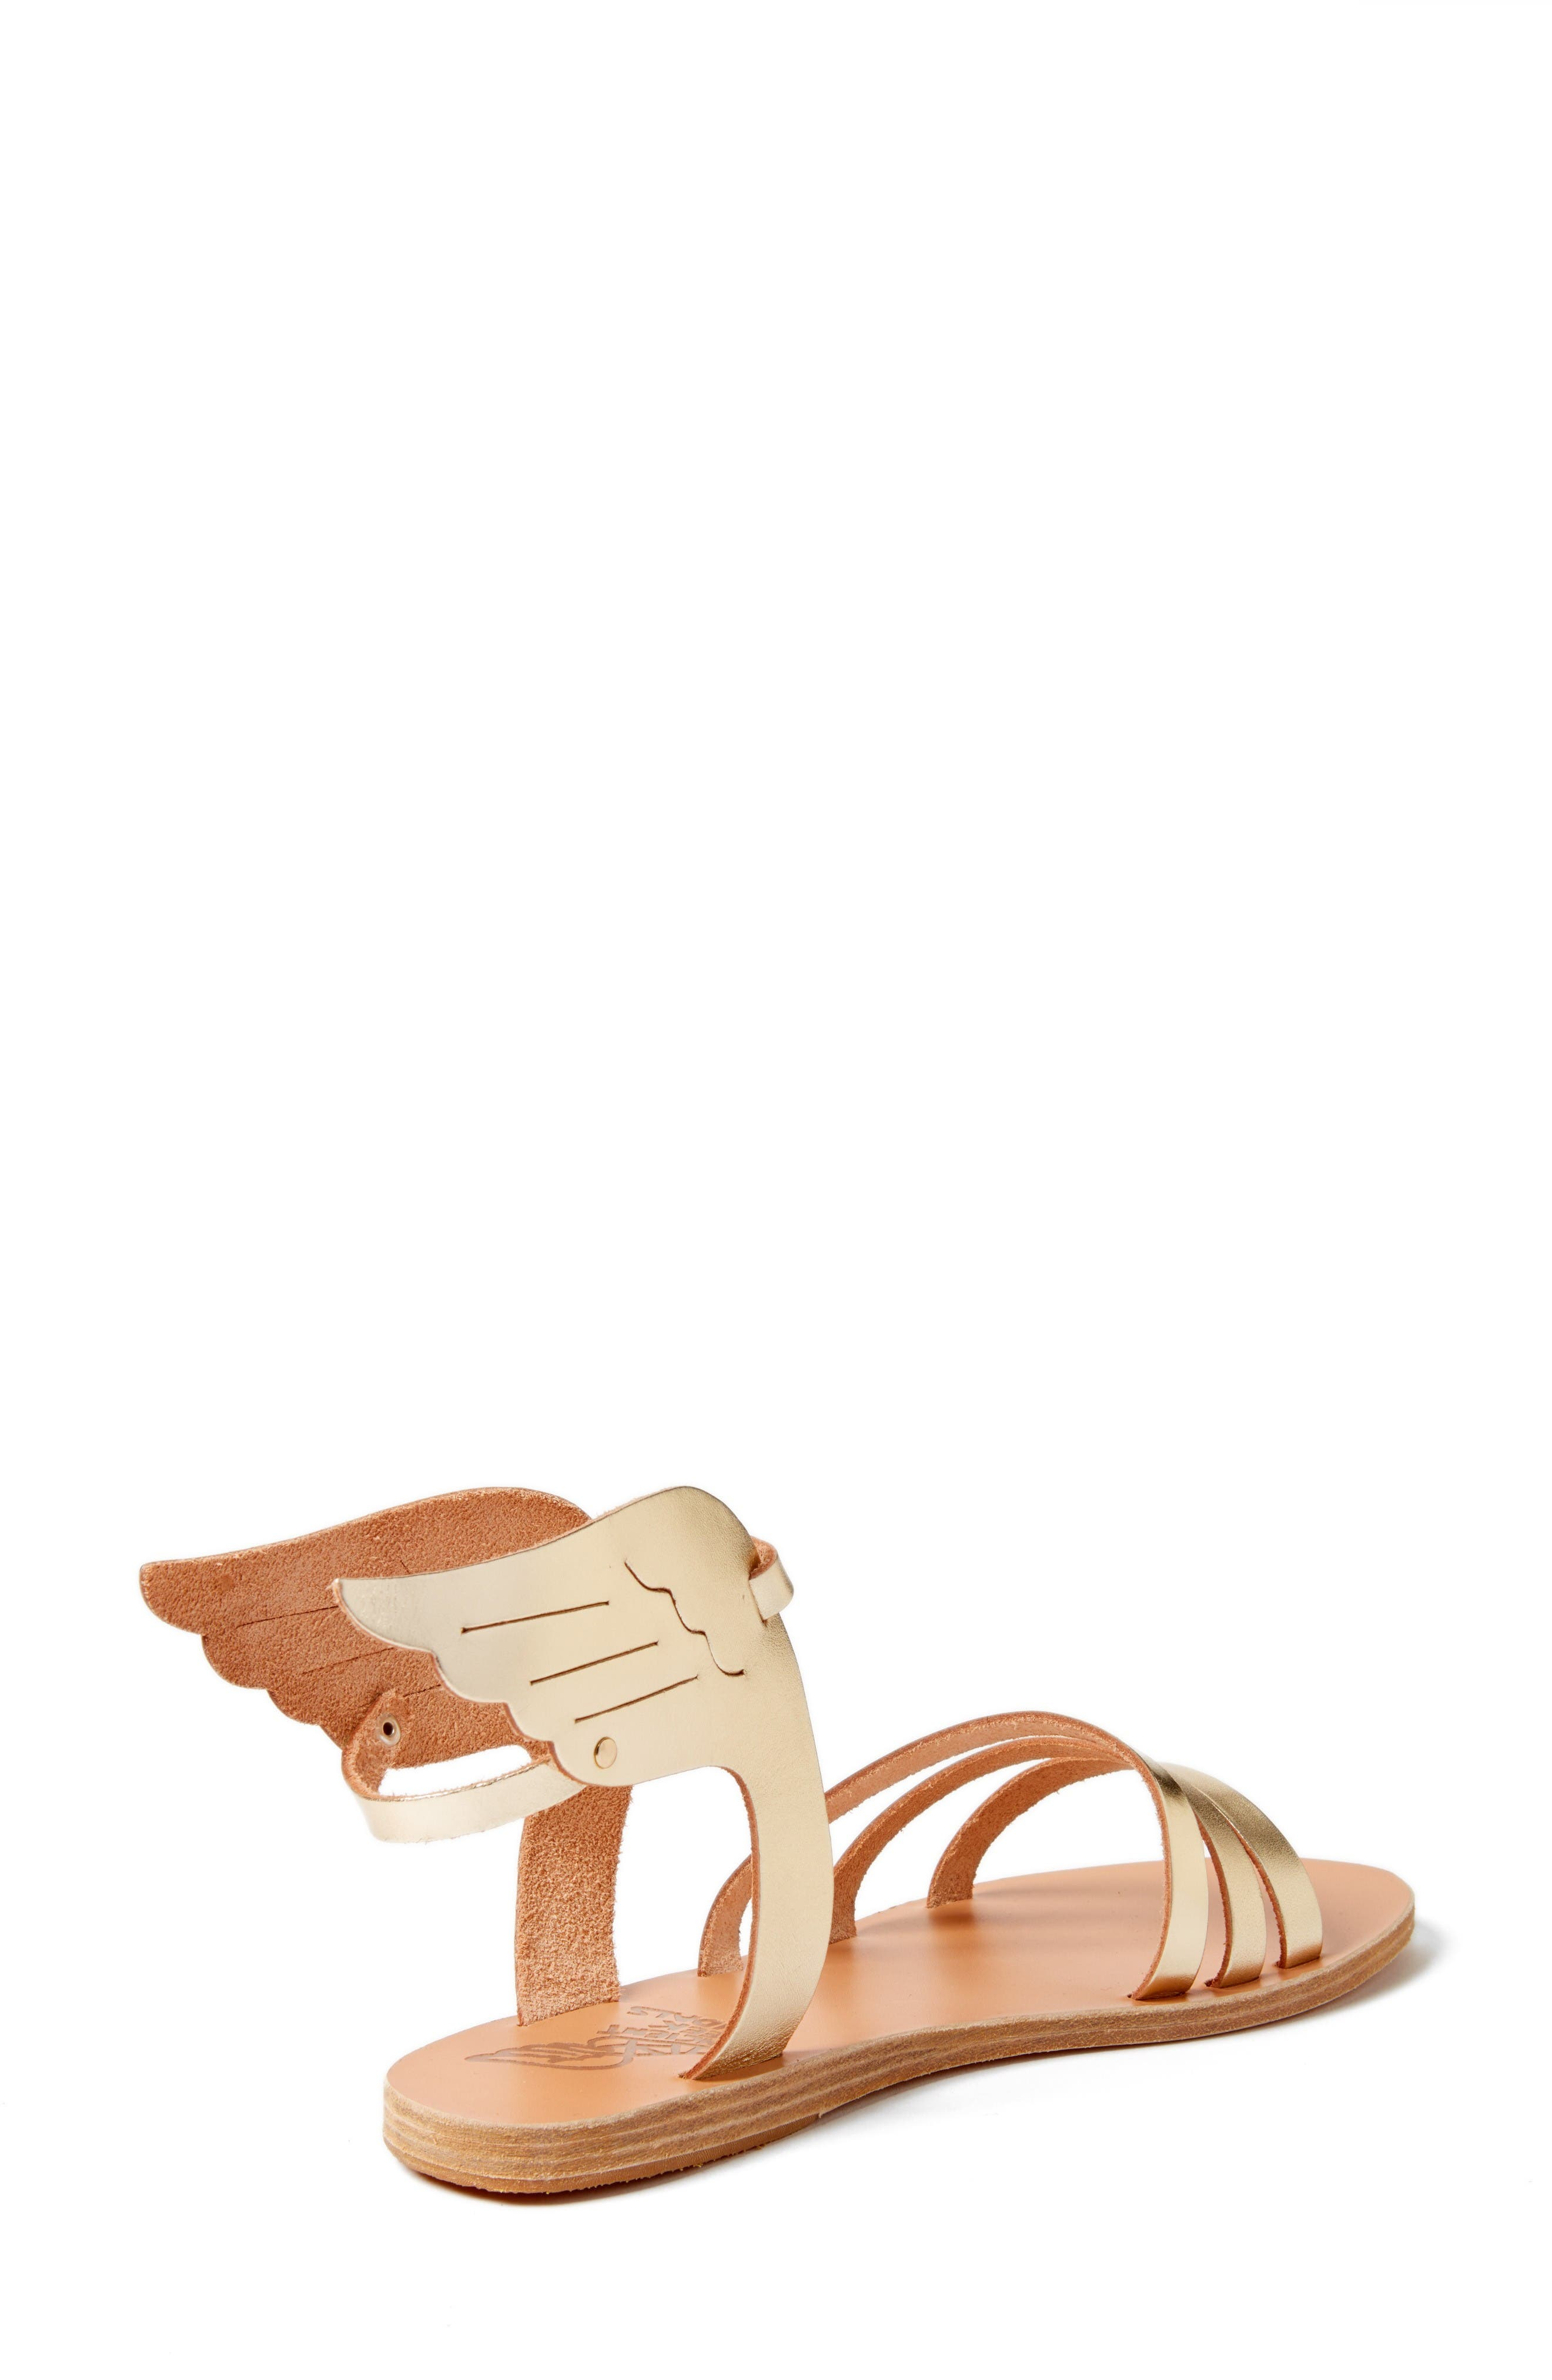 Ikaria Sandal,                             Alternate thumbnail 2, color,                             Platinum